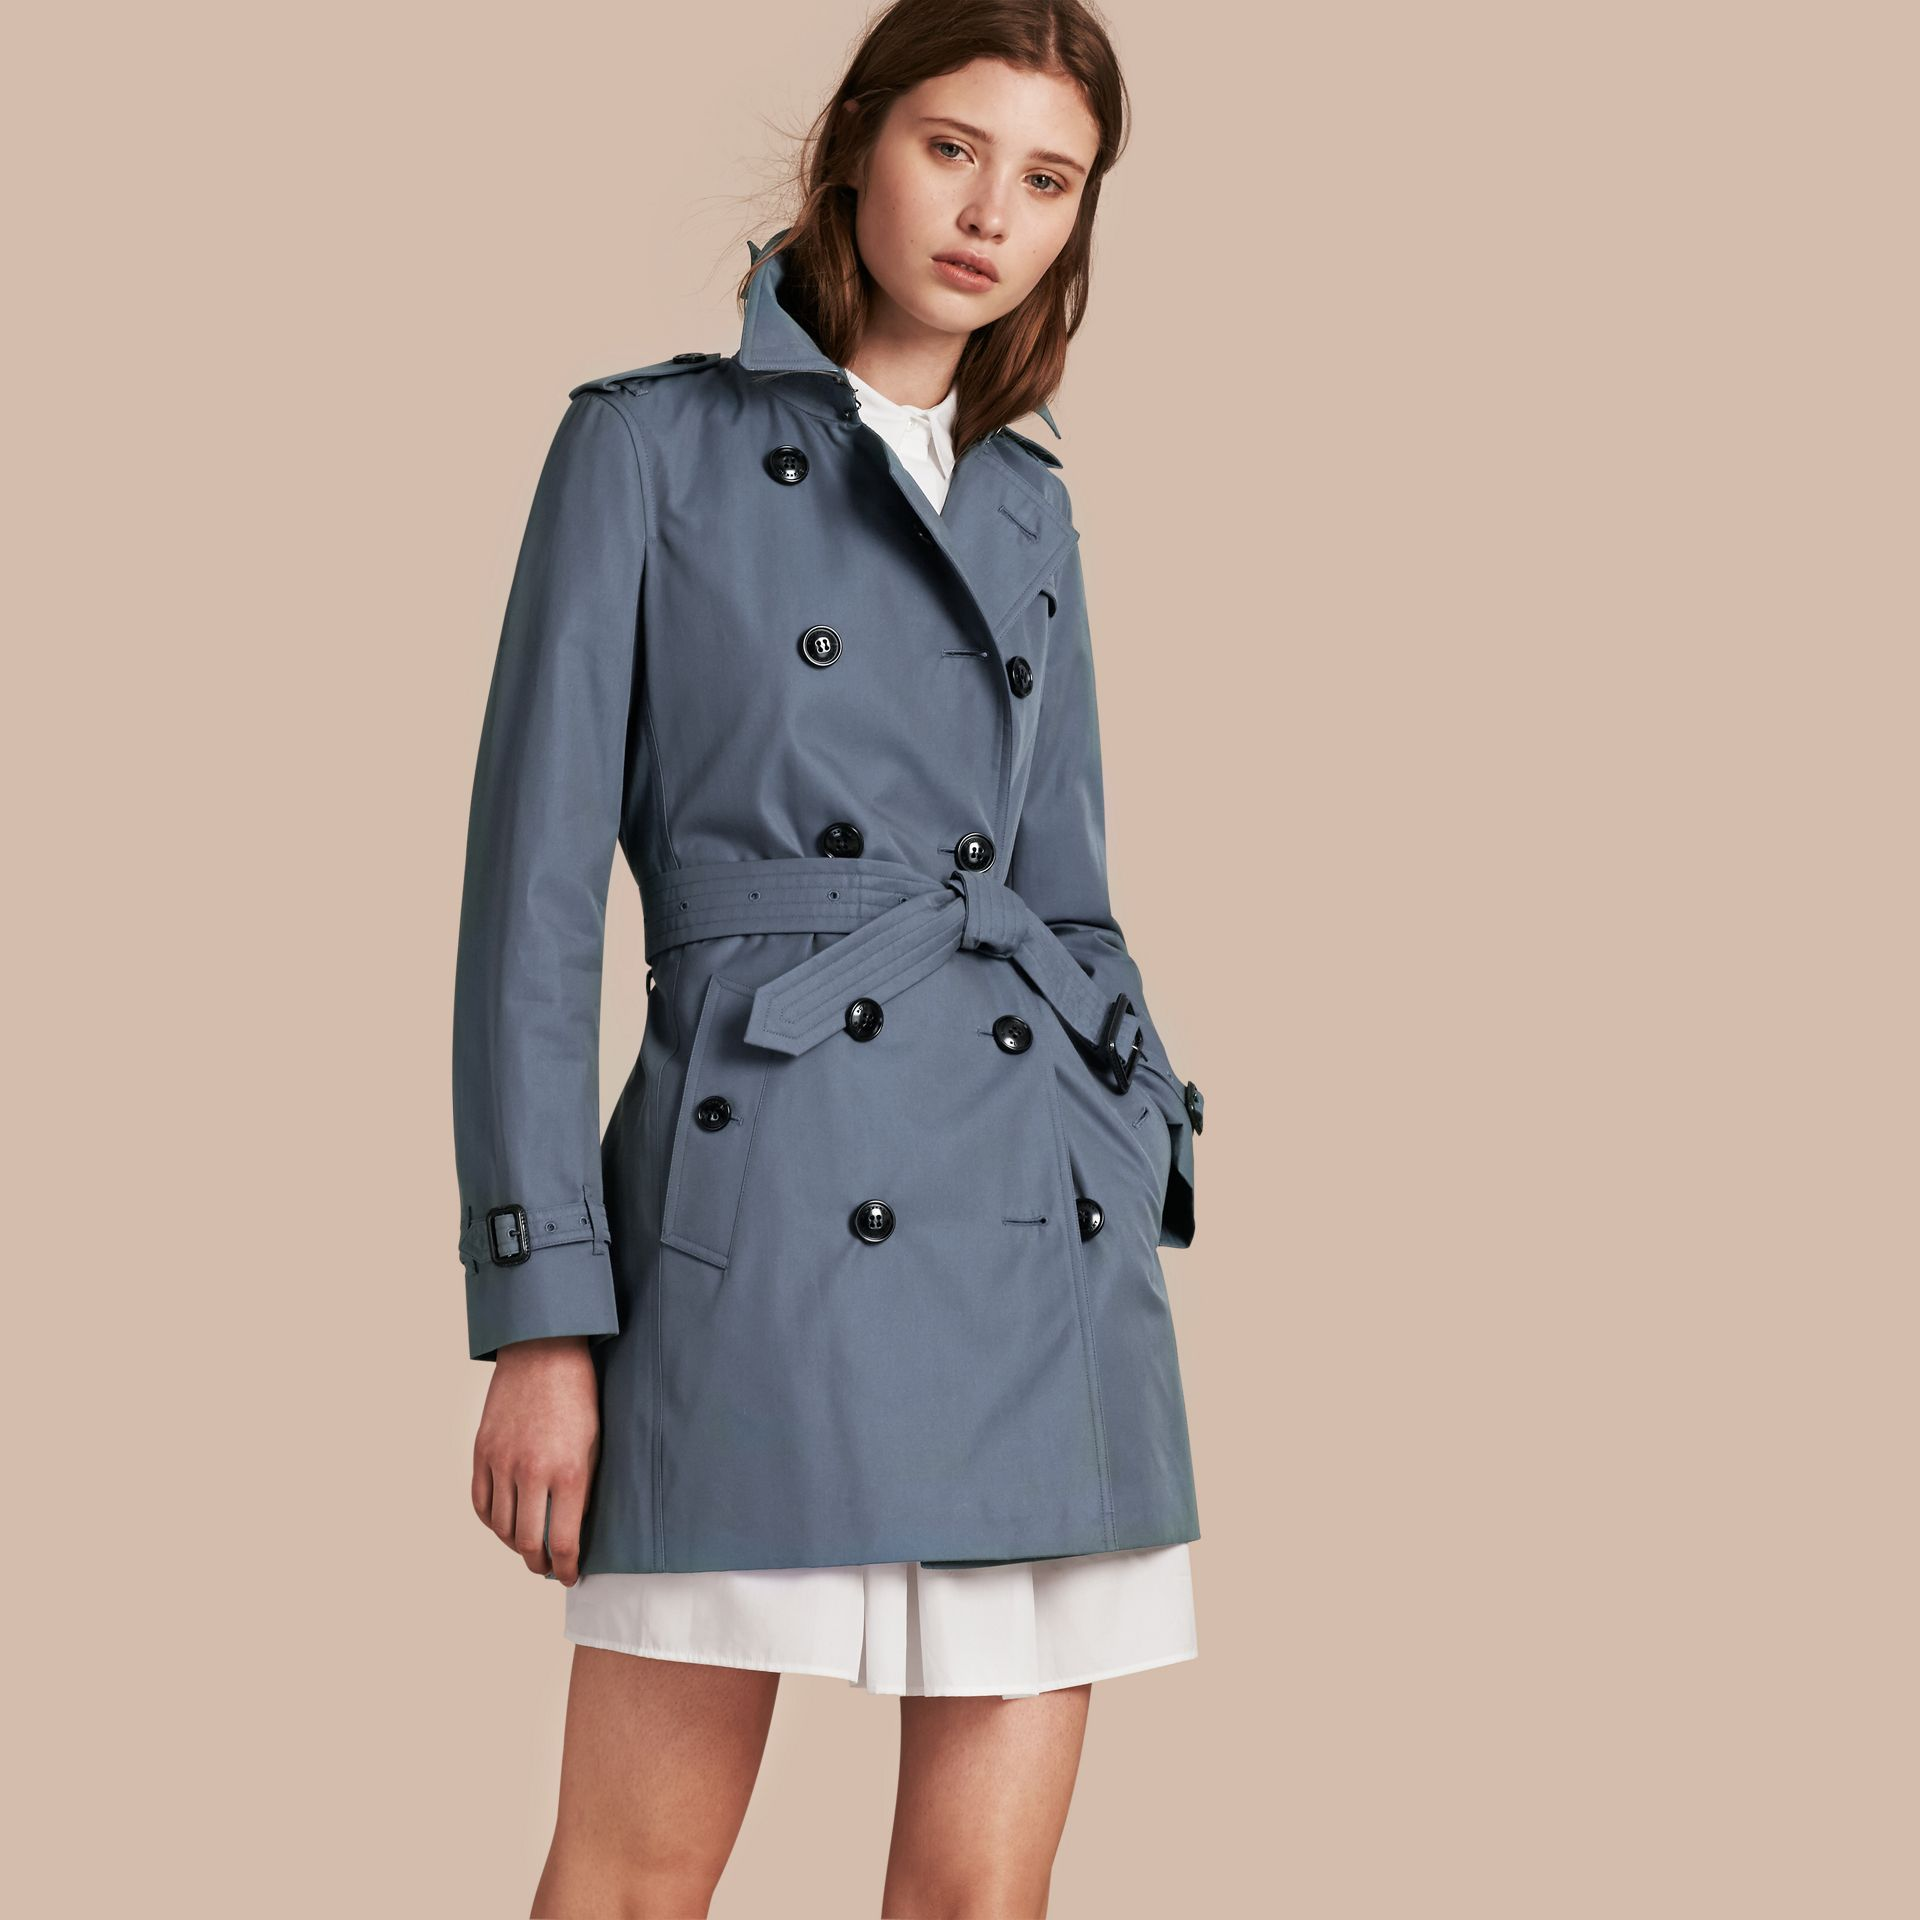 Empire blue Lightweight Cotton Gabardine Trench Coat Empire Blue - gallery image 1